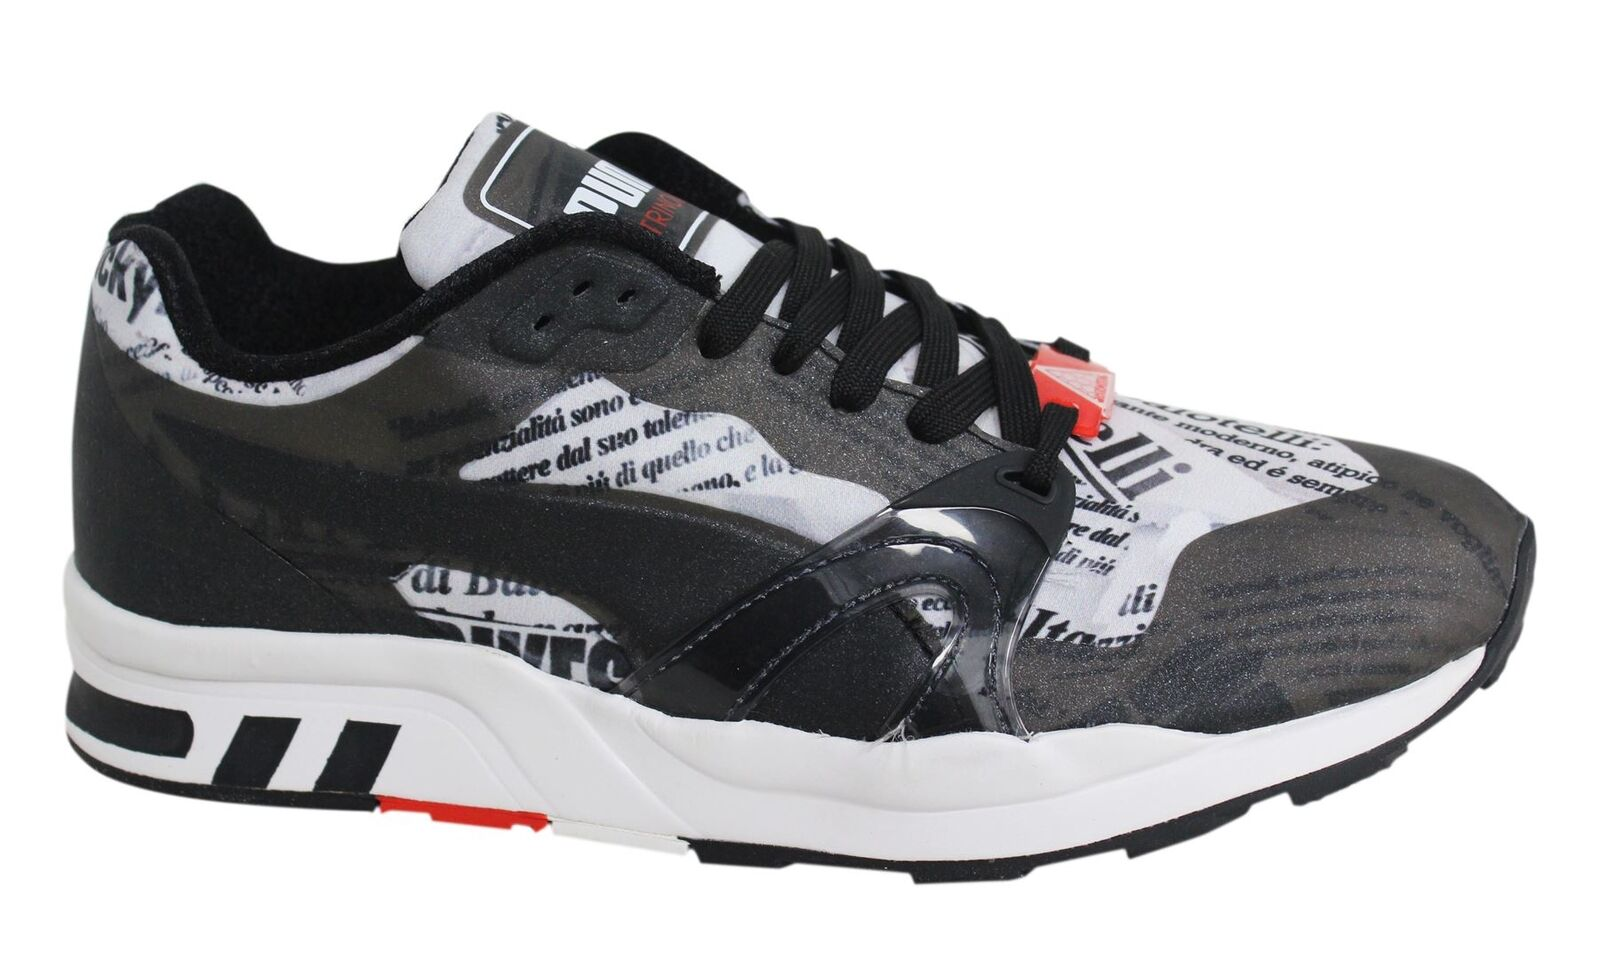 Puma XT1 EVO W.A.P. Black White Lace Up Synthetic Mens Trainers 360082 01 M12